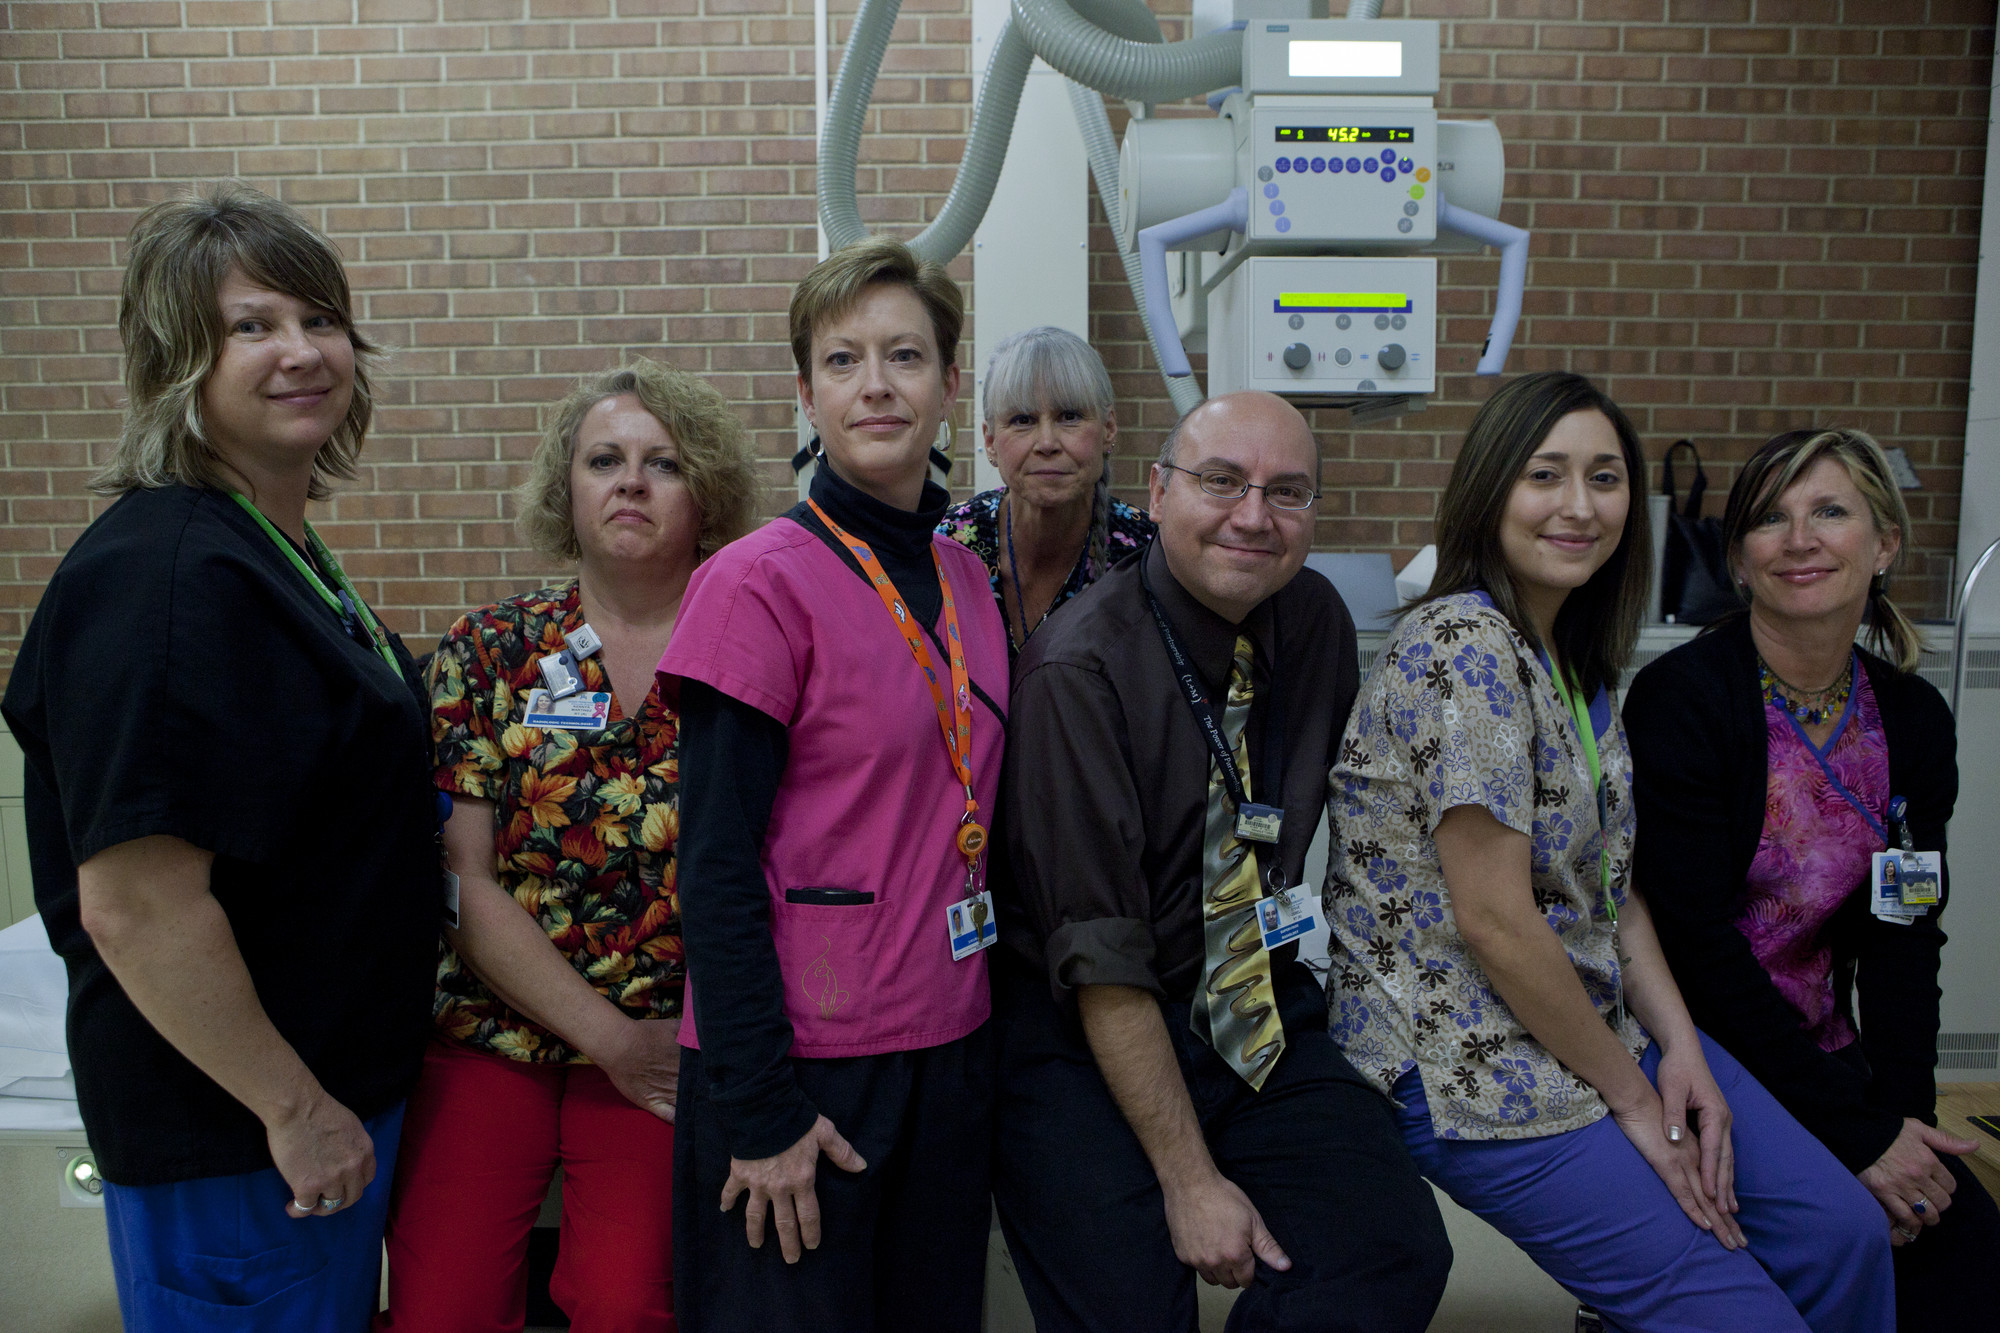 Radiology Tech Pam Fuller. SEIU 105; Rad Tech kennya Matinez. SEIU 105; Diagnostic Med Sonographer Ann Baritovich. SEIU 105; Mammographer Margaret Wollenhaupt. SEIU 105; Radiology Spervisor Steve DeBell. Management; Rad Tech Natlie Munoz. SEIU 105 and Mammographer/rad tech Dianne Powers. SEIU 105